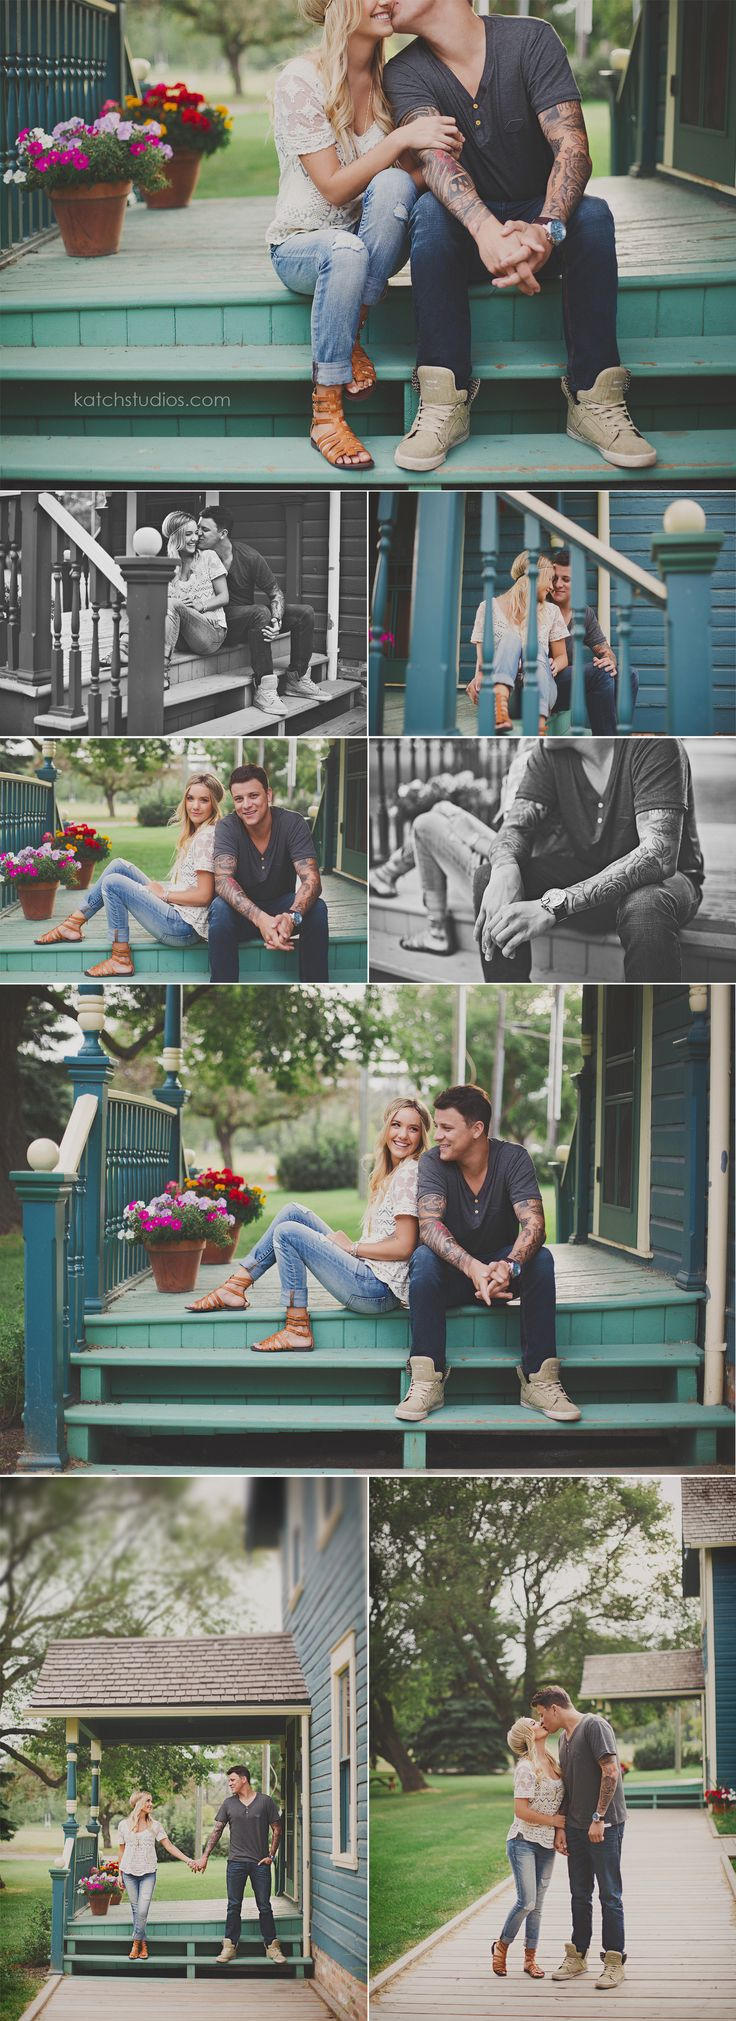 Engagement   First Photography air max street KatchStudios_SawyerDaleE_     photos style Home       Engagement and